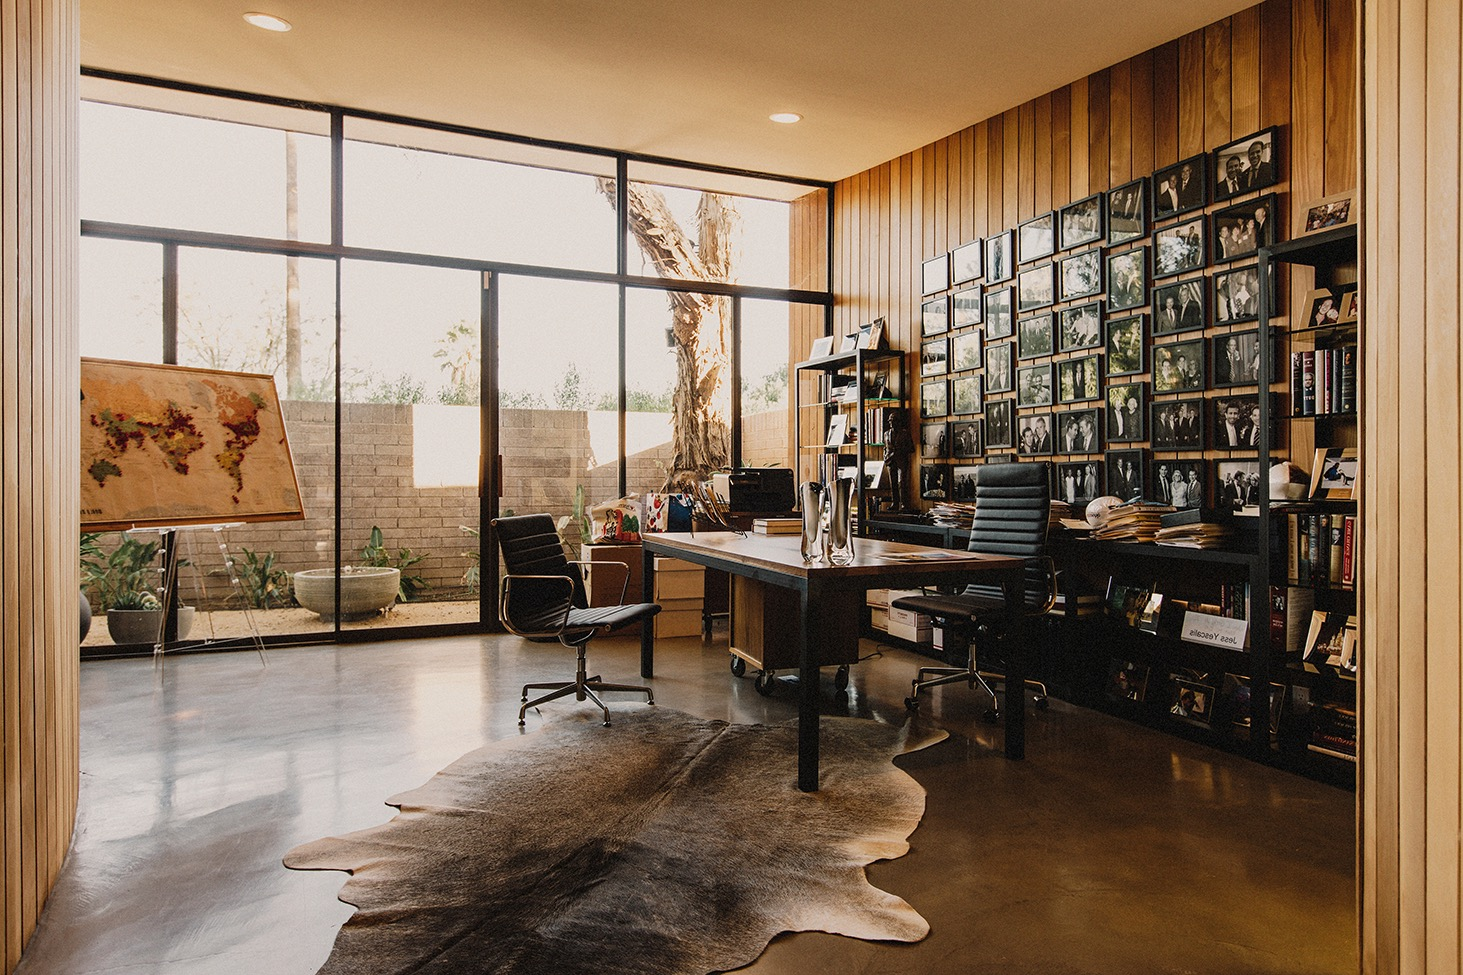 Modern Home Office Decor With Glass Windows And Door (Image 29 of 50)